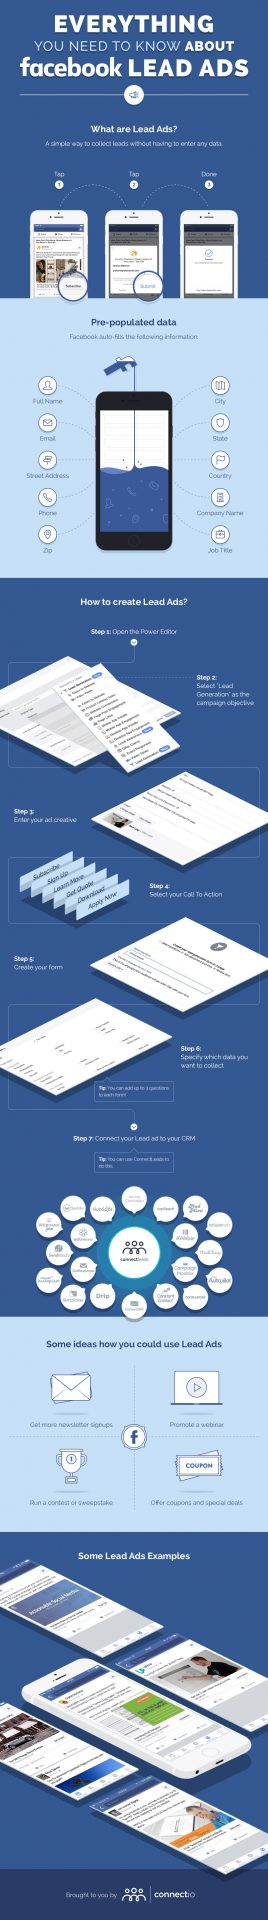 Facebook-lead-ads-infographic-everything-you-need-to-know